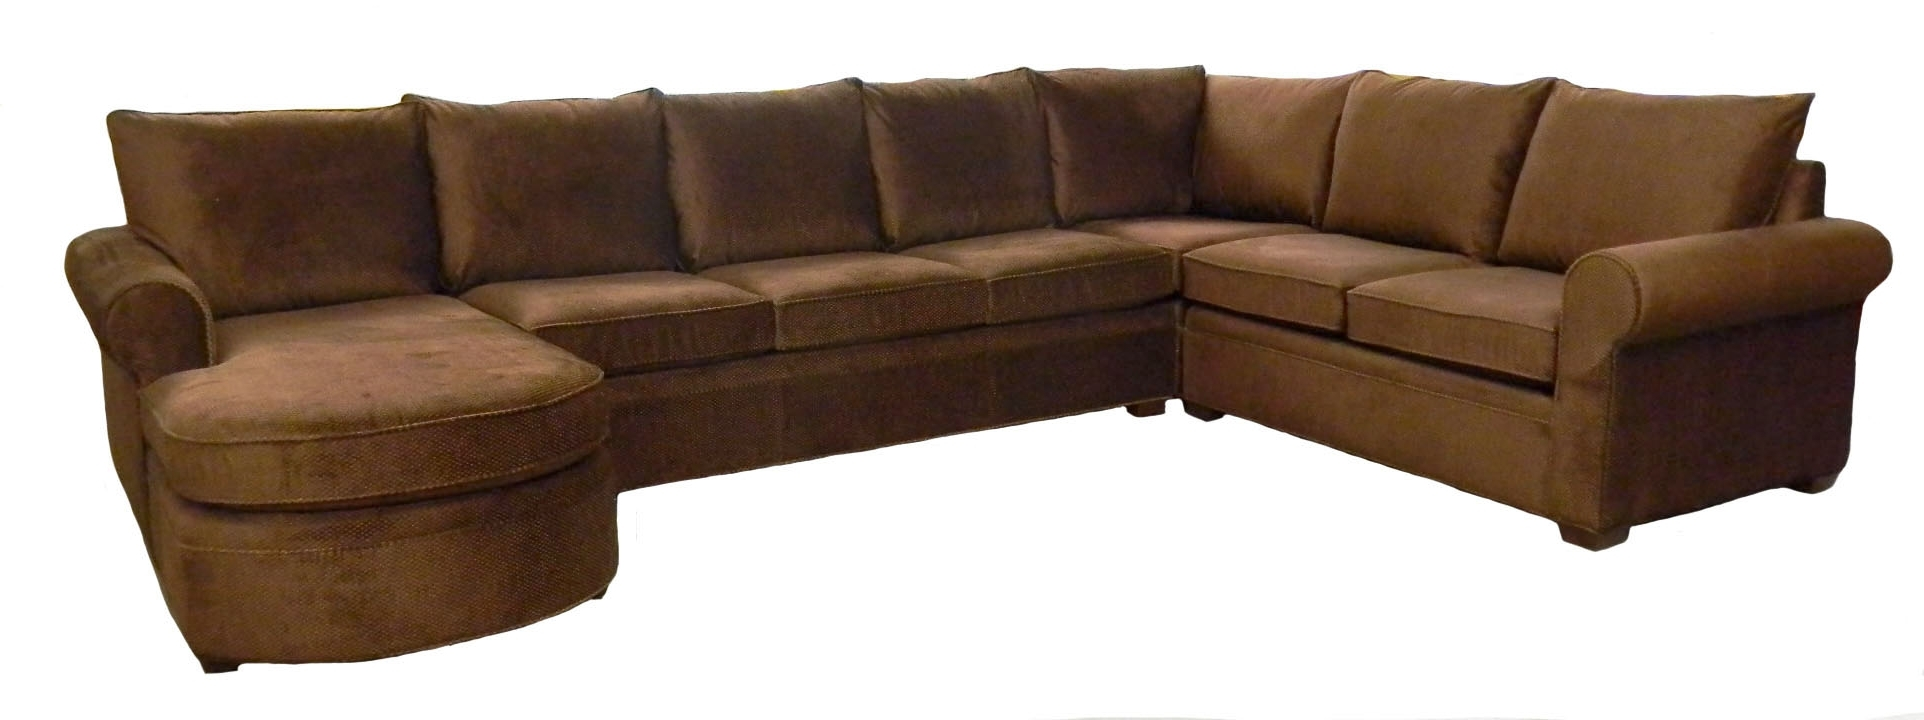 Fashionable Denver Sectional Sofas For Sectional Sofa Denver – Hotelsbacau (View 2 of 15)